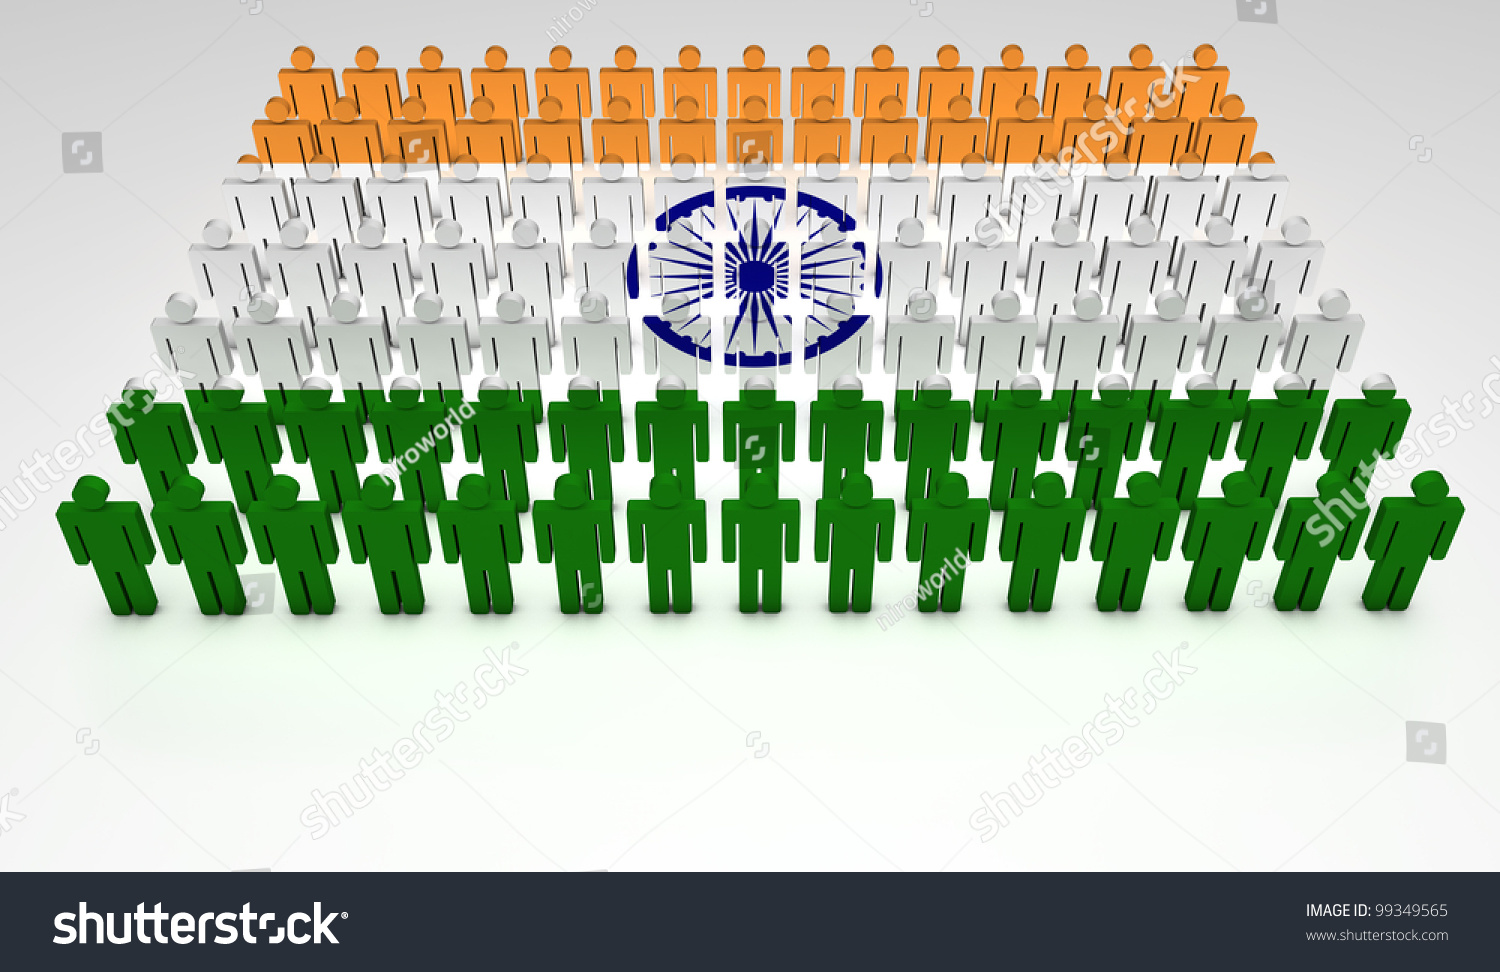 Indian Flag With Different Views: Parade Of 3d People Forming A Top View Of Indian Flag